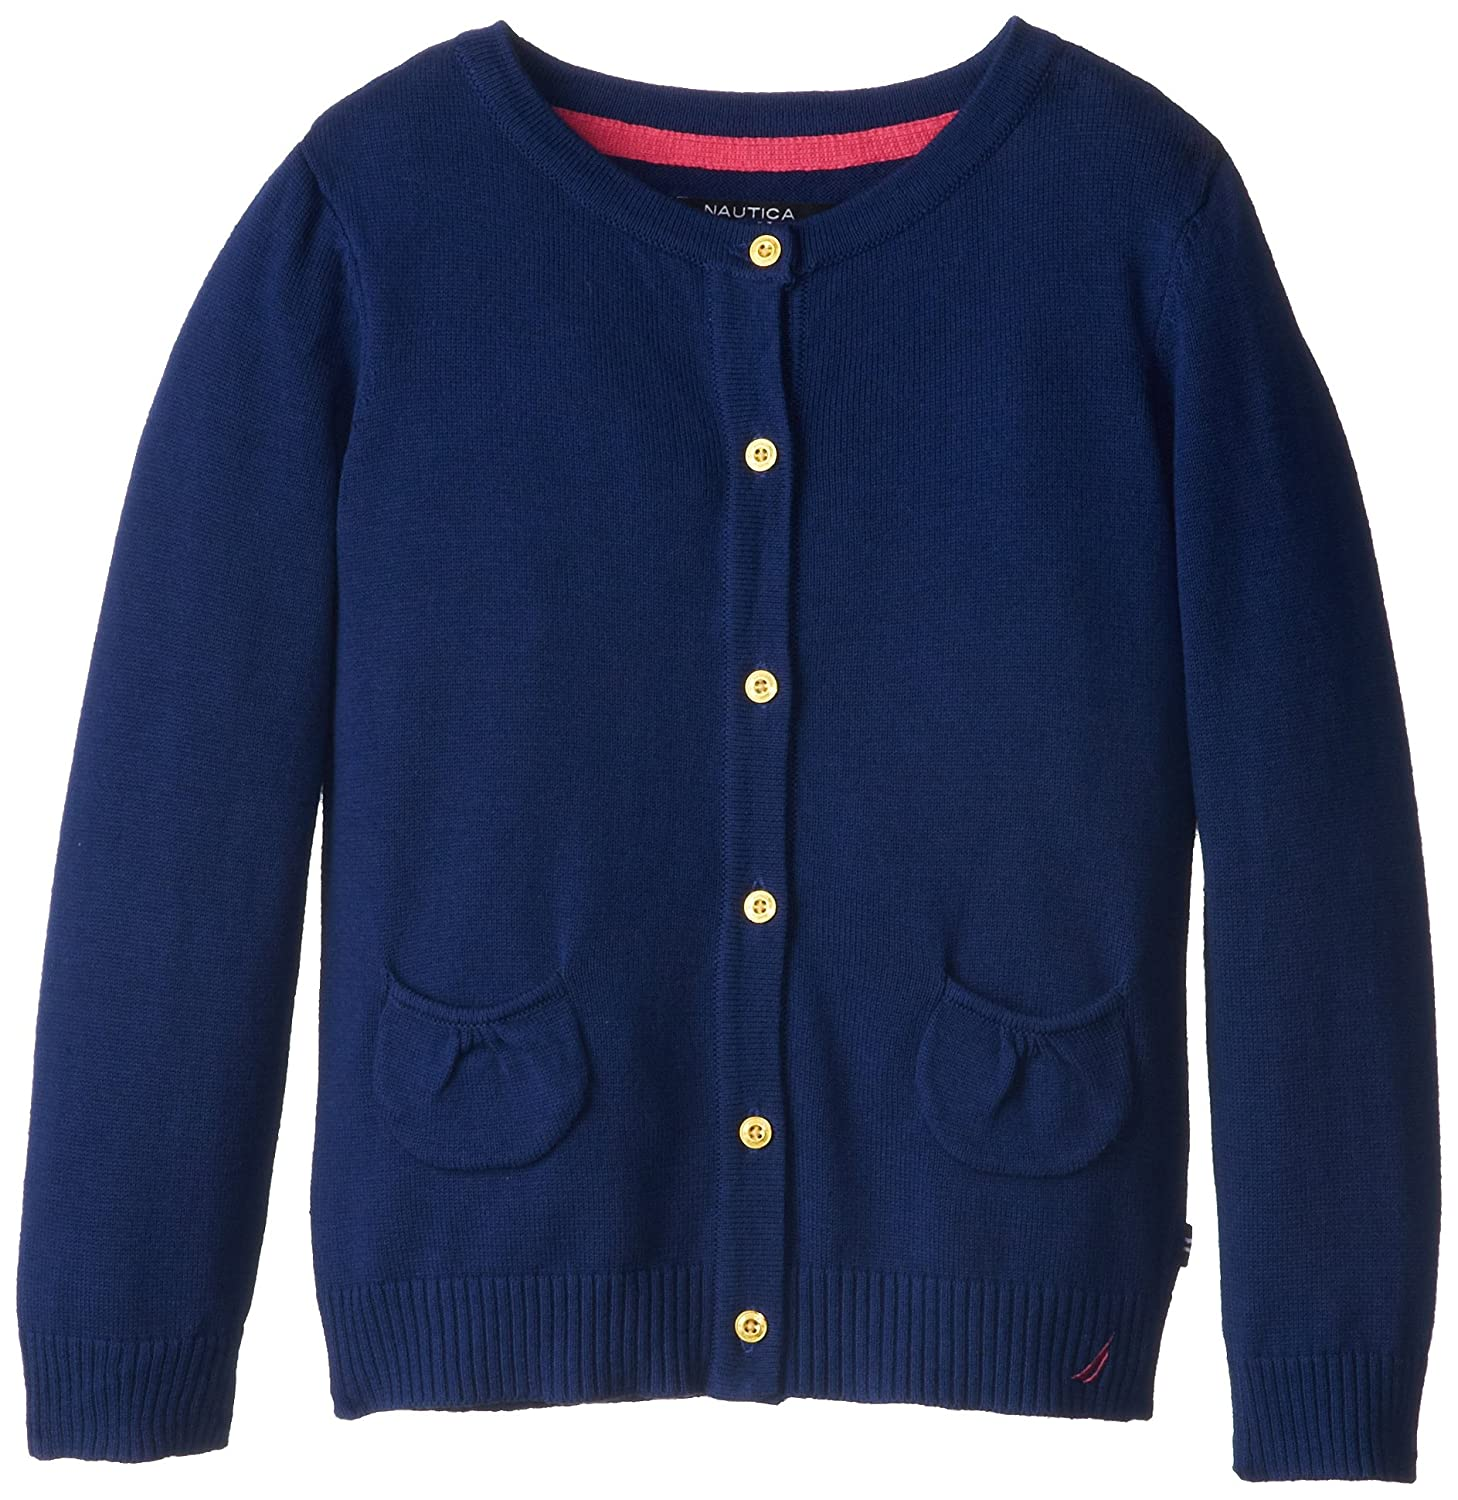 Nautica Girls' Big Jersey Cardigan Sweater with Pockets, NDC0020Q